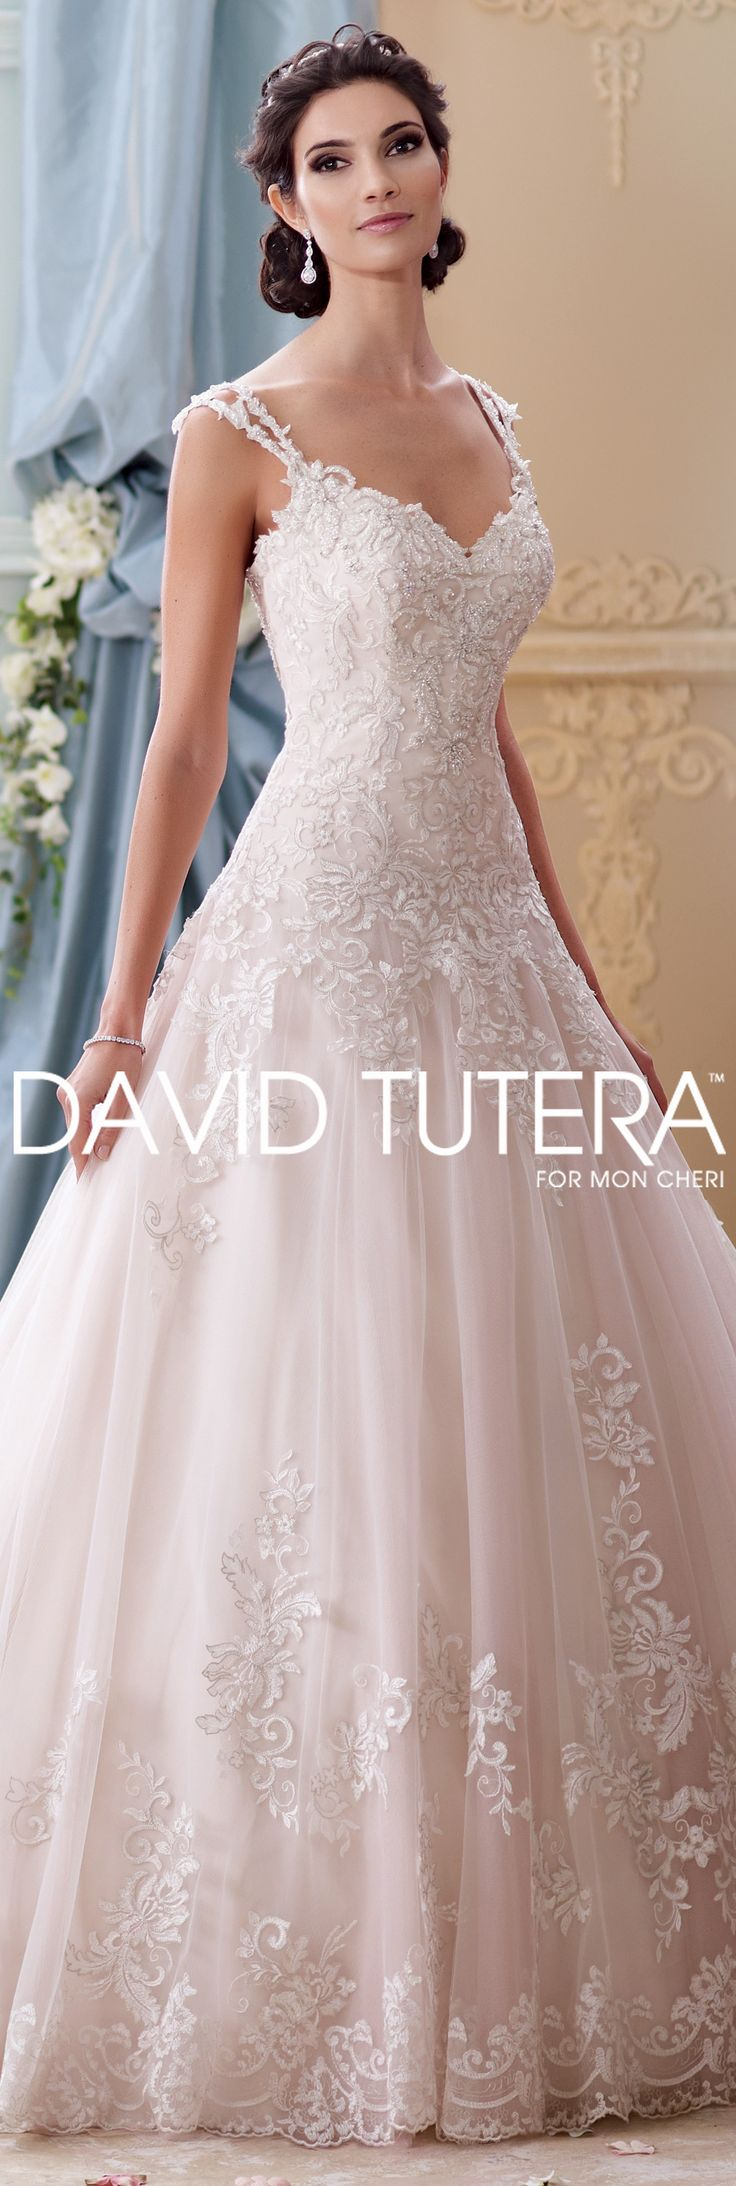 The David Tutera for Mon Cheri Fall 2015 Wedding Gown Collection - Style No. 215277 Arwen  #laceweddingdresses